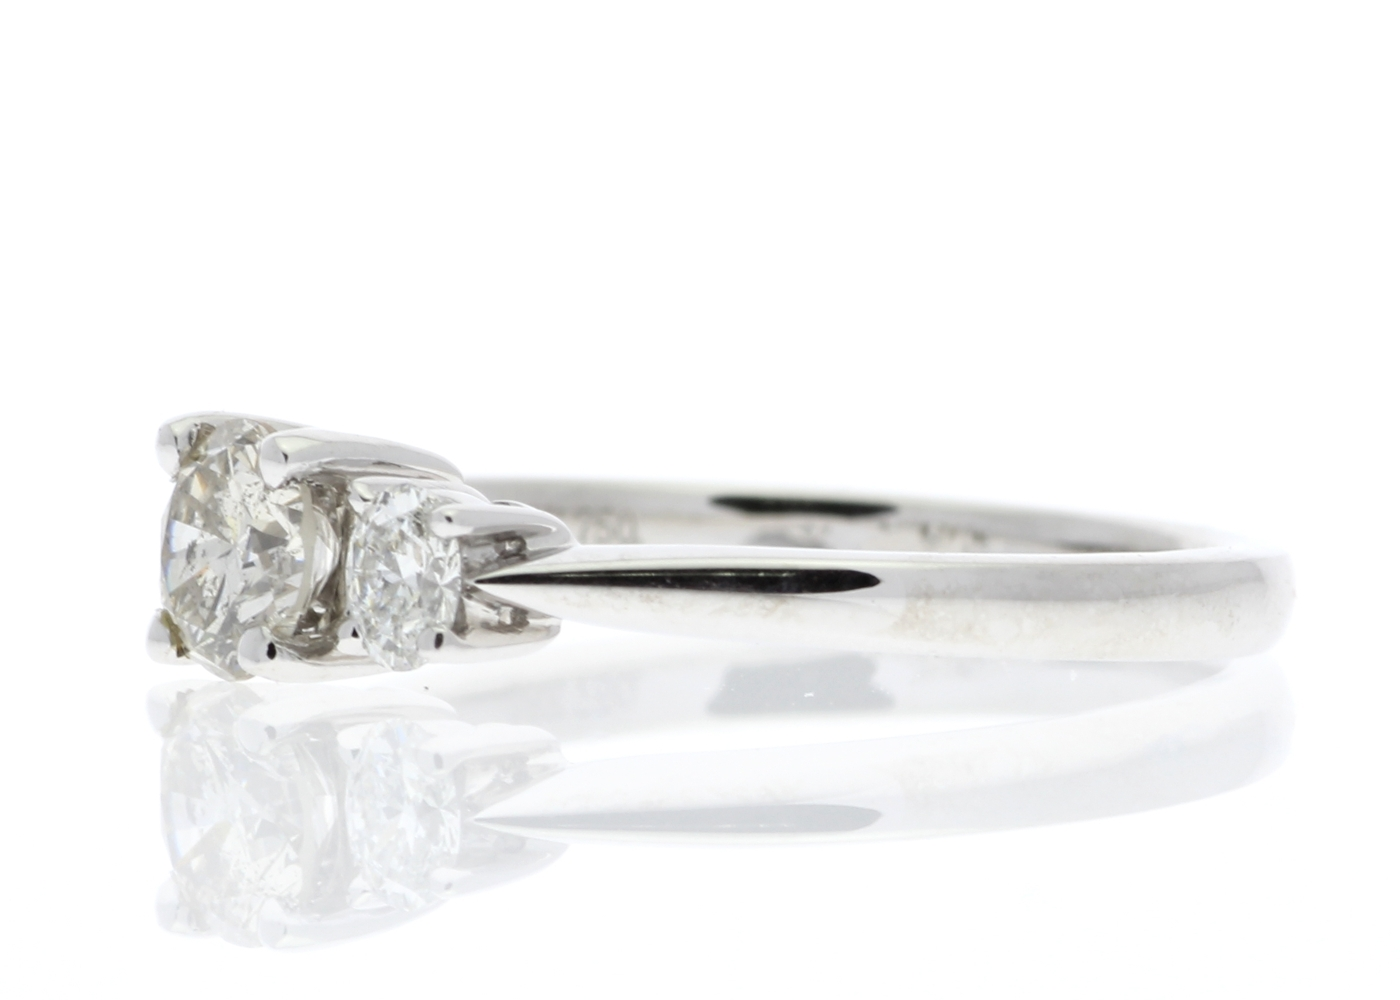 18ct White Gold Three Stone Claw Set Diamond Ring 0.73 Carats - Image 2 of 5